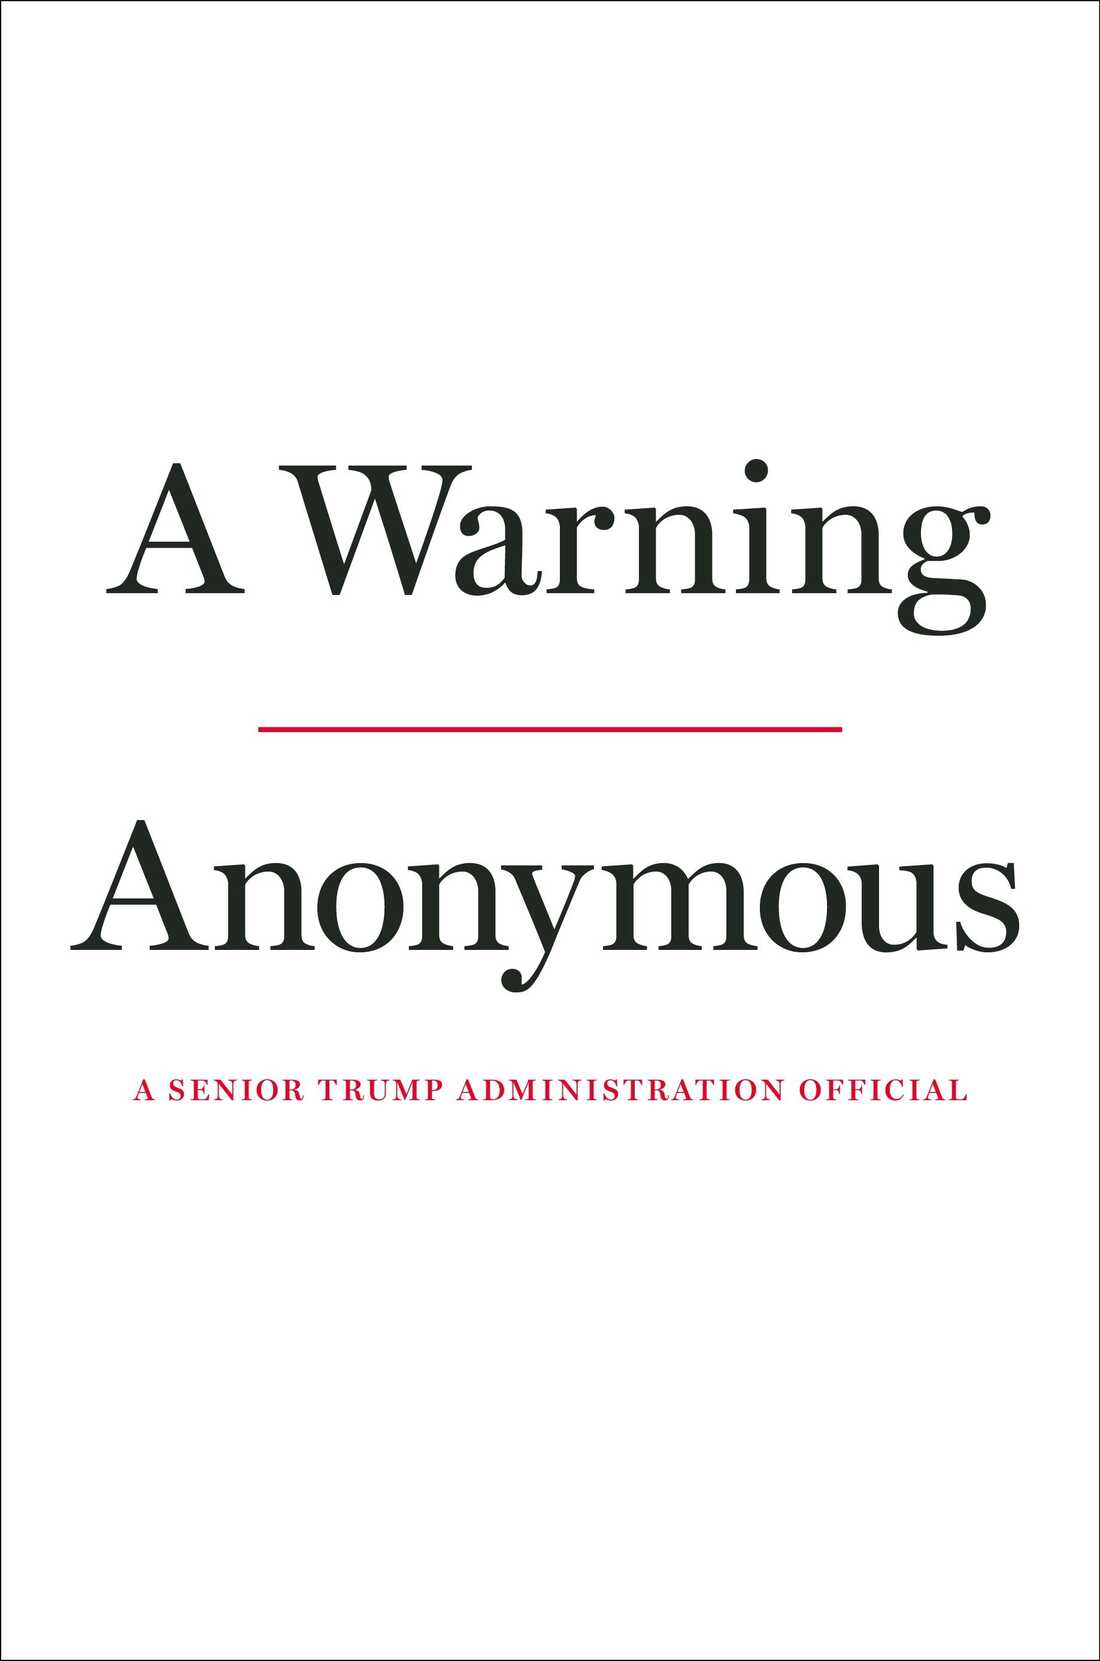 """The author of The New York Times' op-ed """"I Am Part of the Resistance Inside the Trump Administration"""" has written a new book called A Warning, scheduled to be published Nov. 19."""